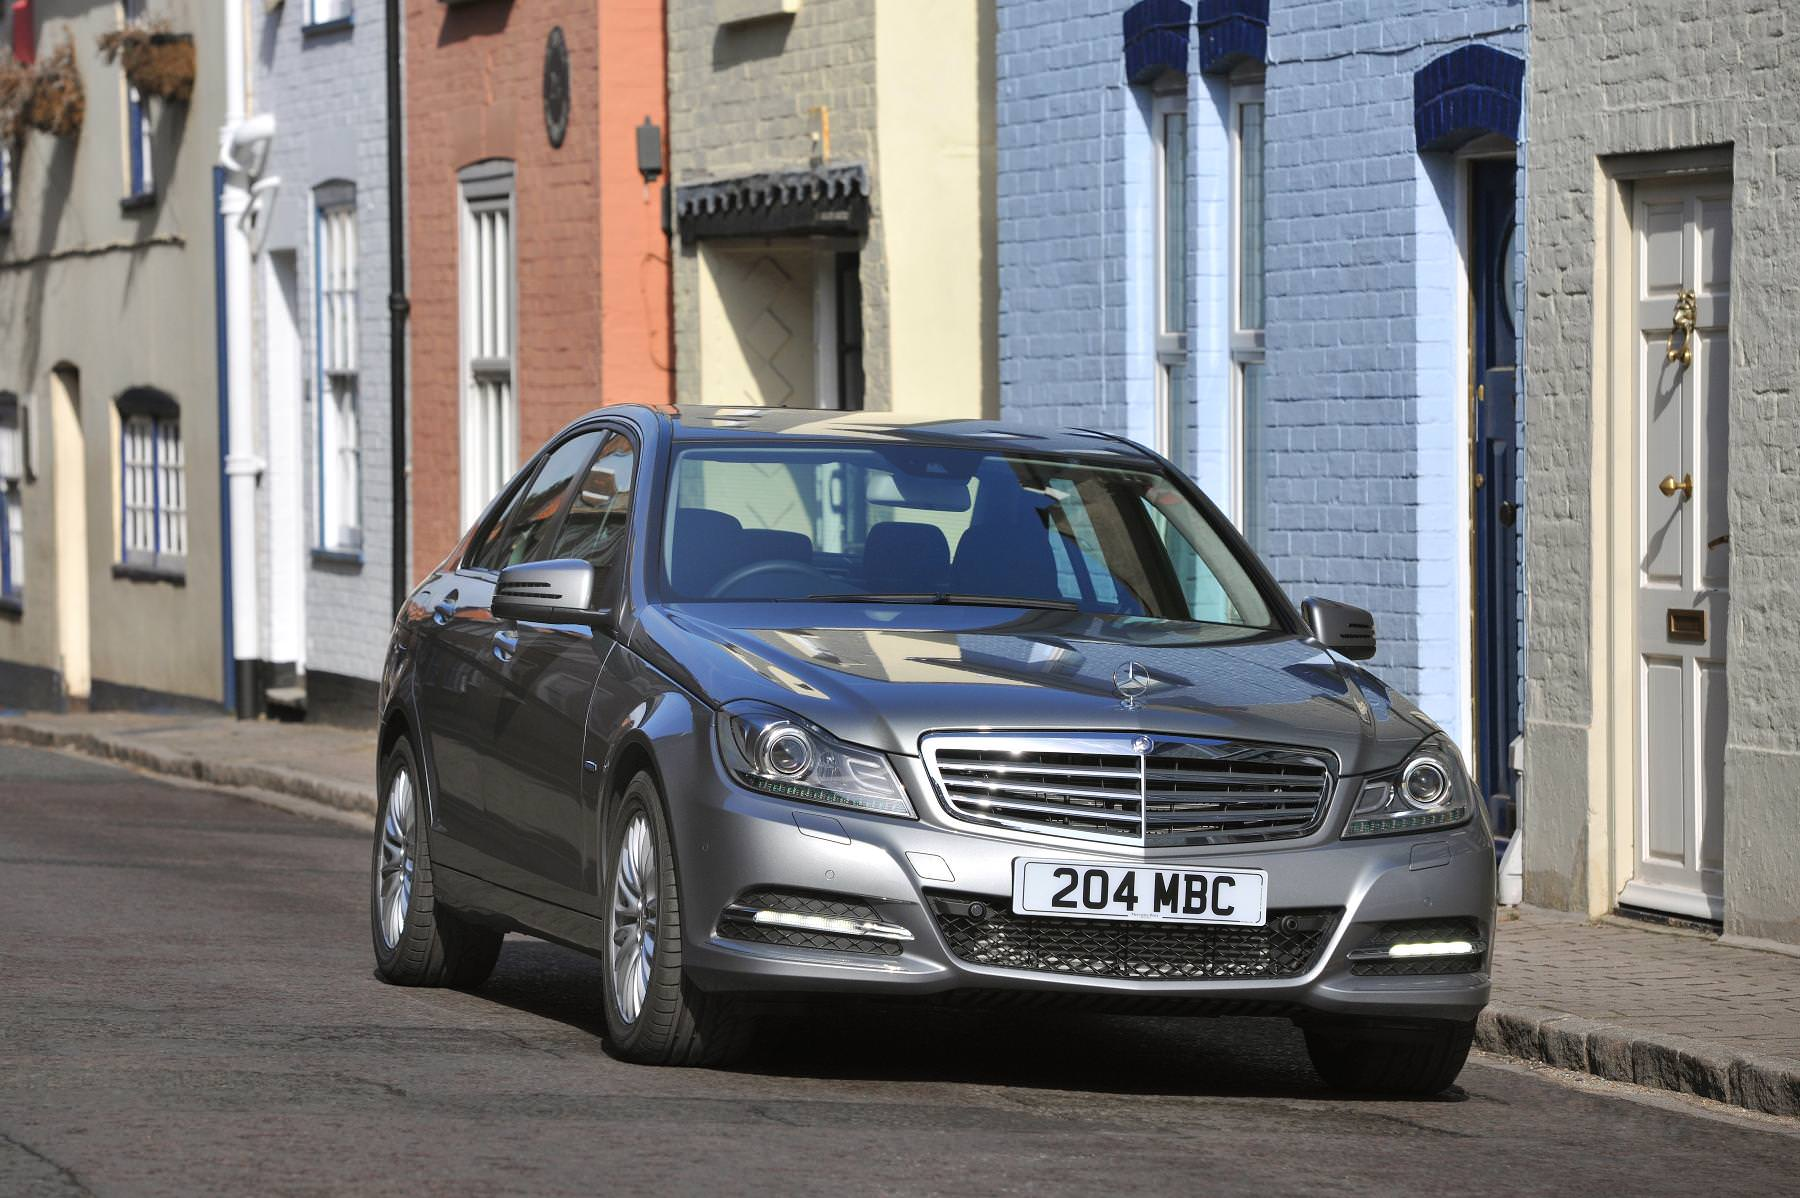 One of the best used family cars for £600 - Mercedes C